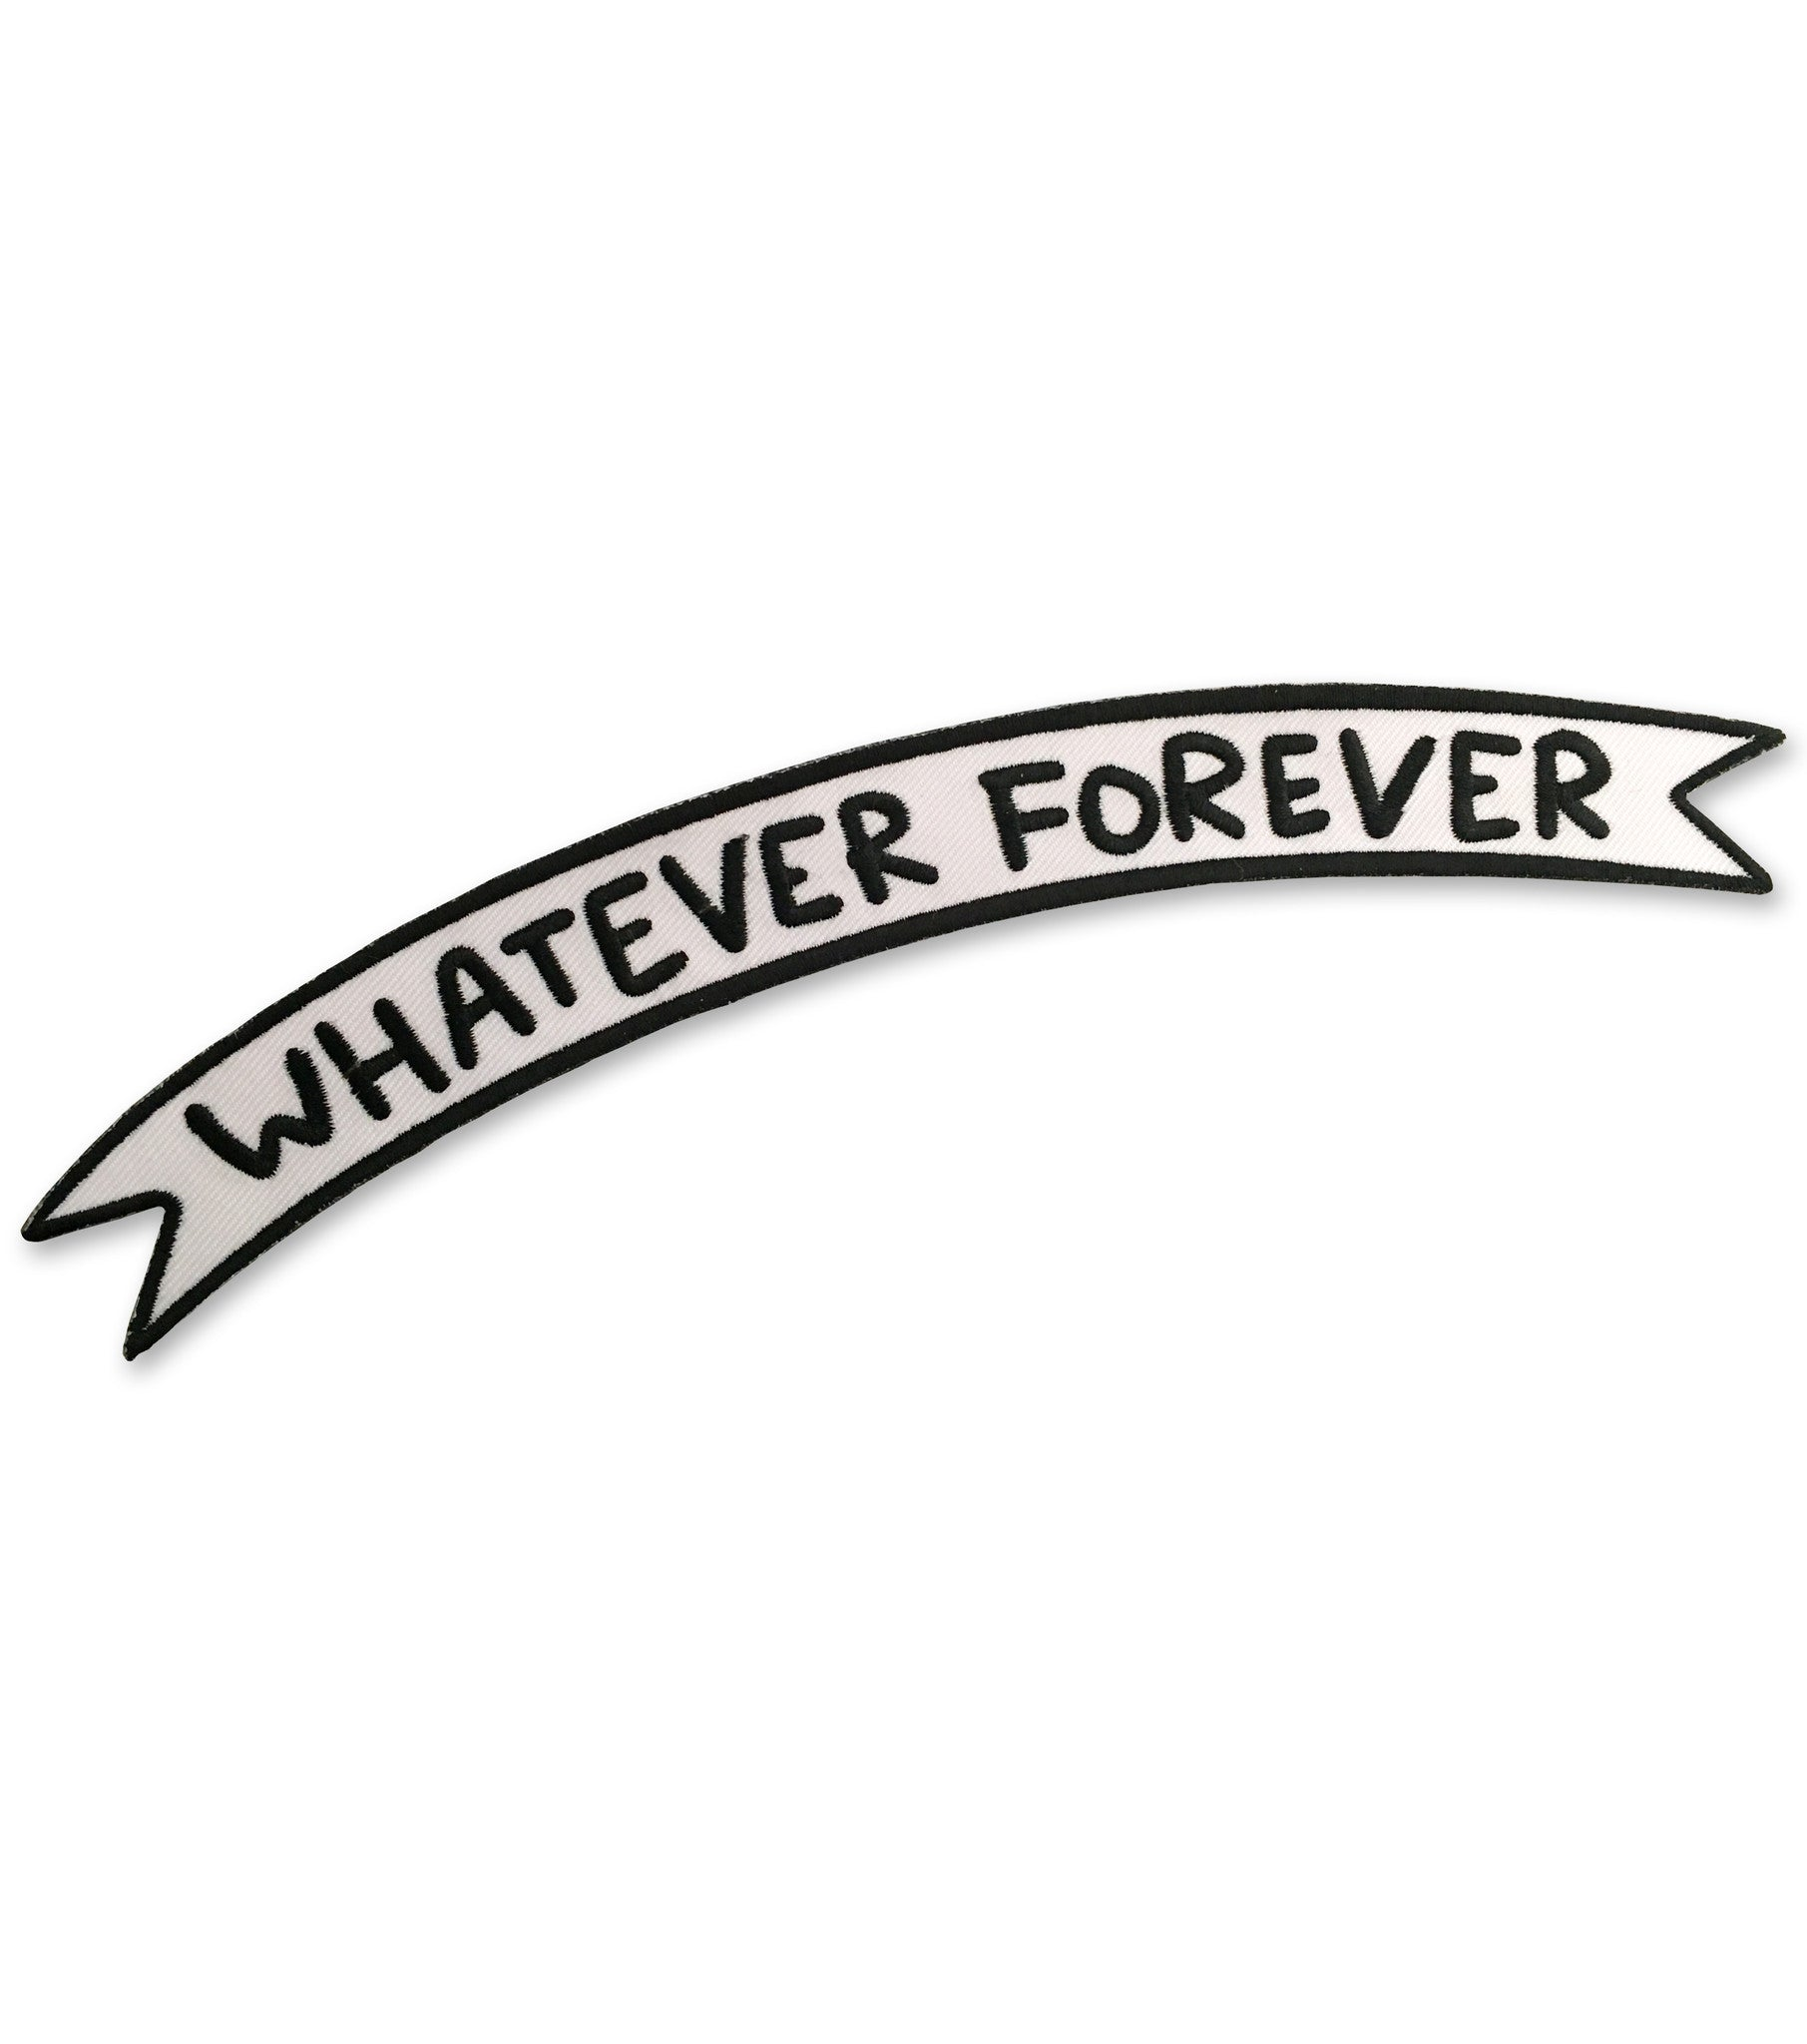 WHATEVER FOREVER BANNER iron-on patch